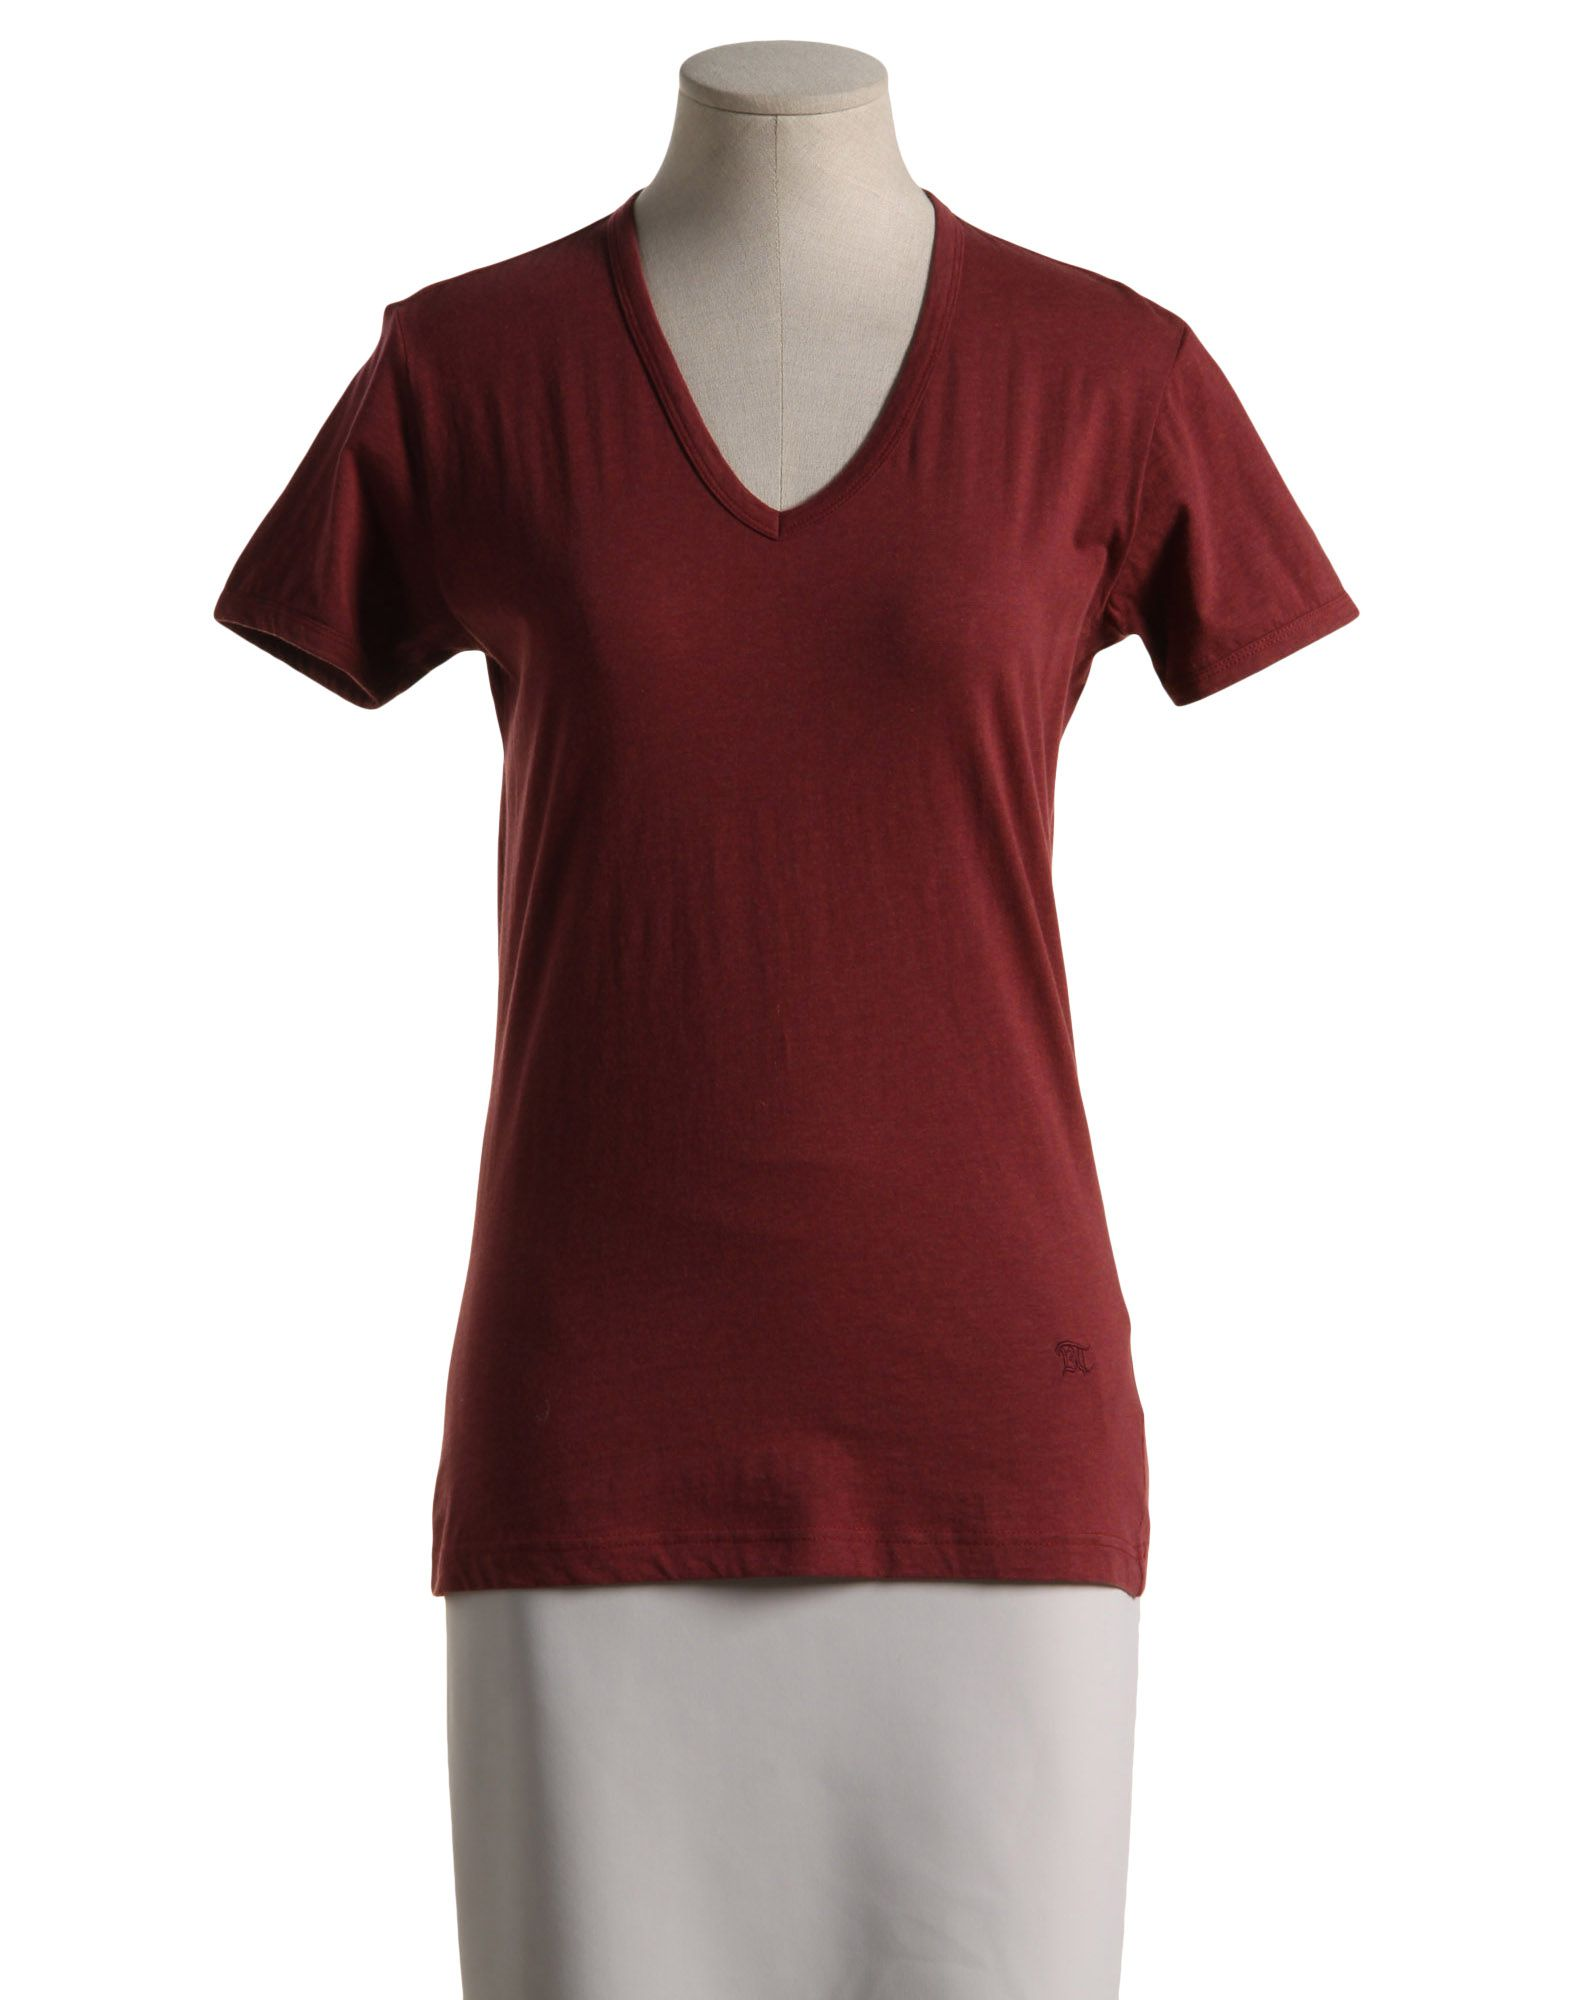 Purple T-Shirts in Bulk, Wholesale Pricing. Purple, the color of royalty and wealth, can add flair to any outfit. Purple was once the most expensive color of dye that existed, but here at whomeverf.cf we are committed to bringing you the best bargain available on the web.